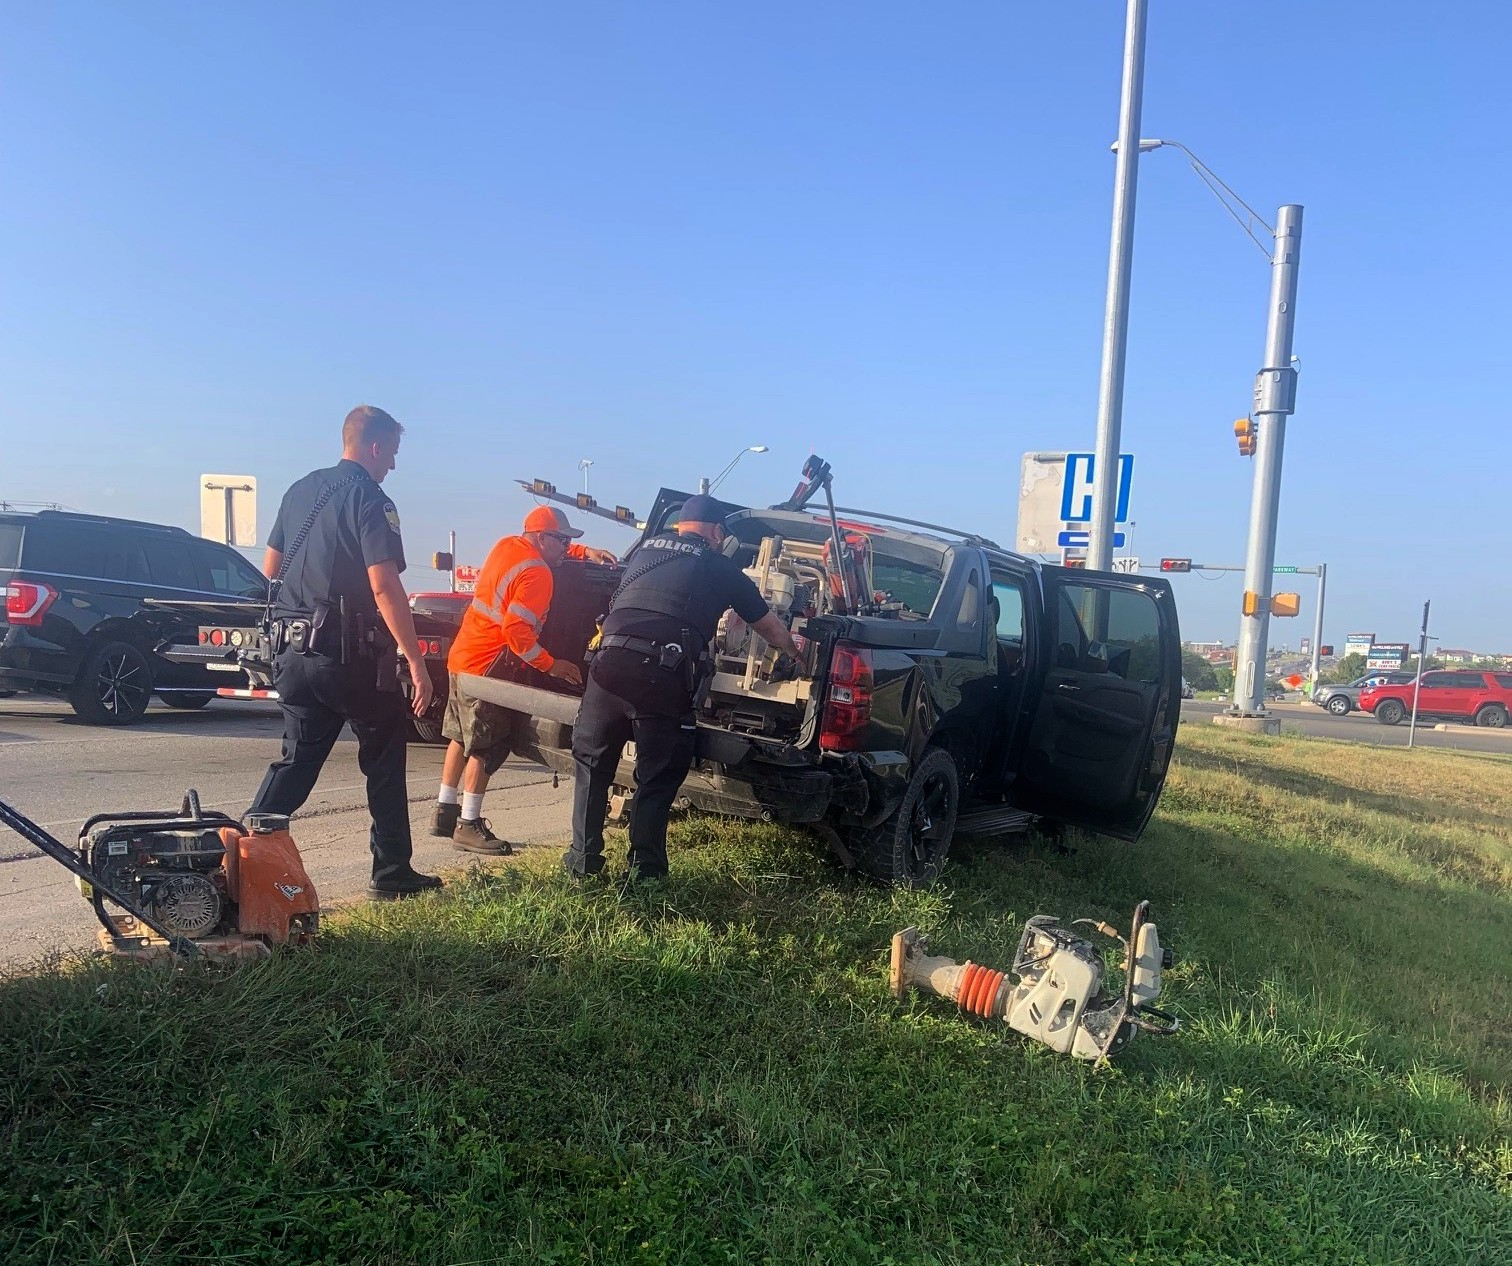 The suspect's vehicle exited I-35 at the 215 mile marker and crashed into a light pole at Kyle Parkway. (City of Kyle Photo)